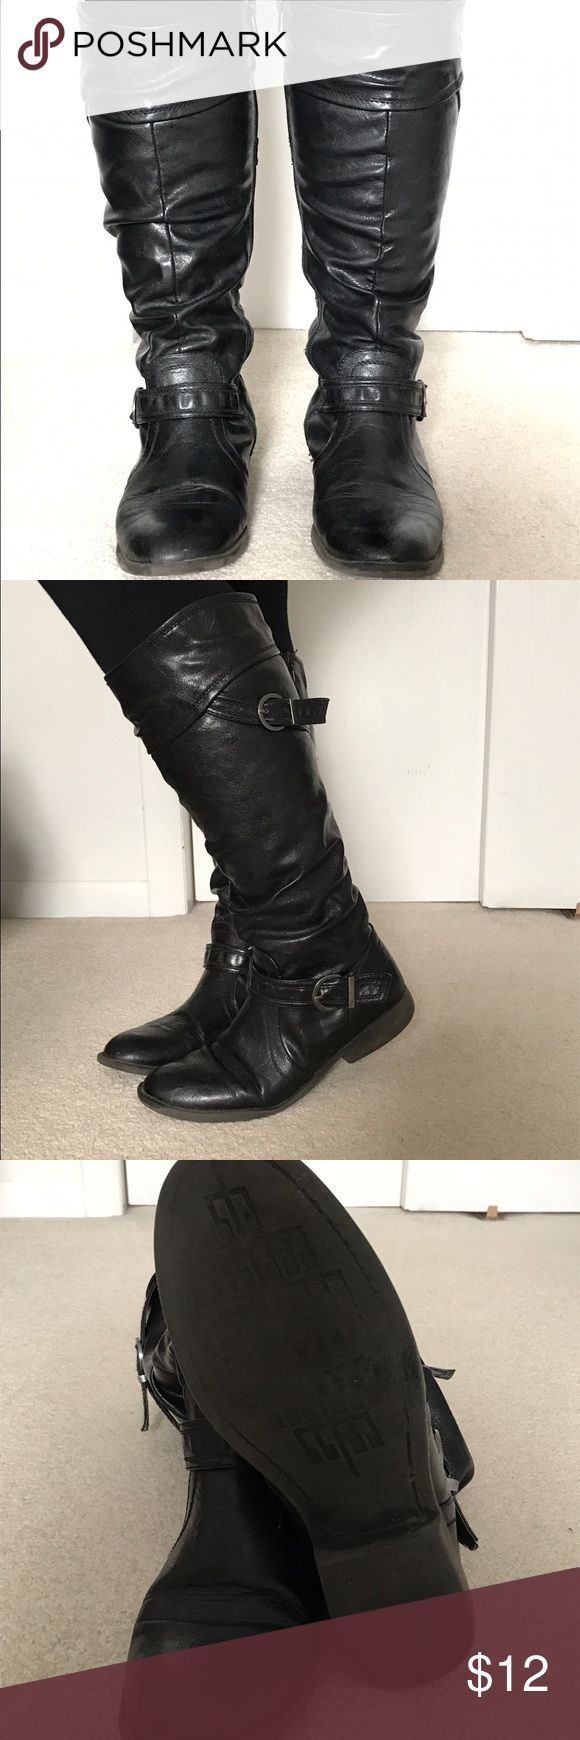 White Mountain Leather boots White Mountain Black leather boots in good used condition. Size 8 1/2 wide calf White Mountain Shoes